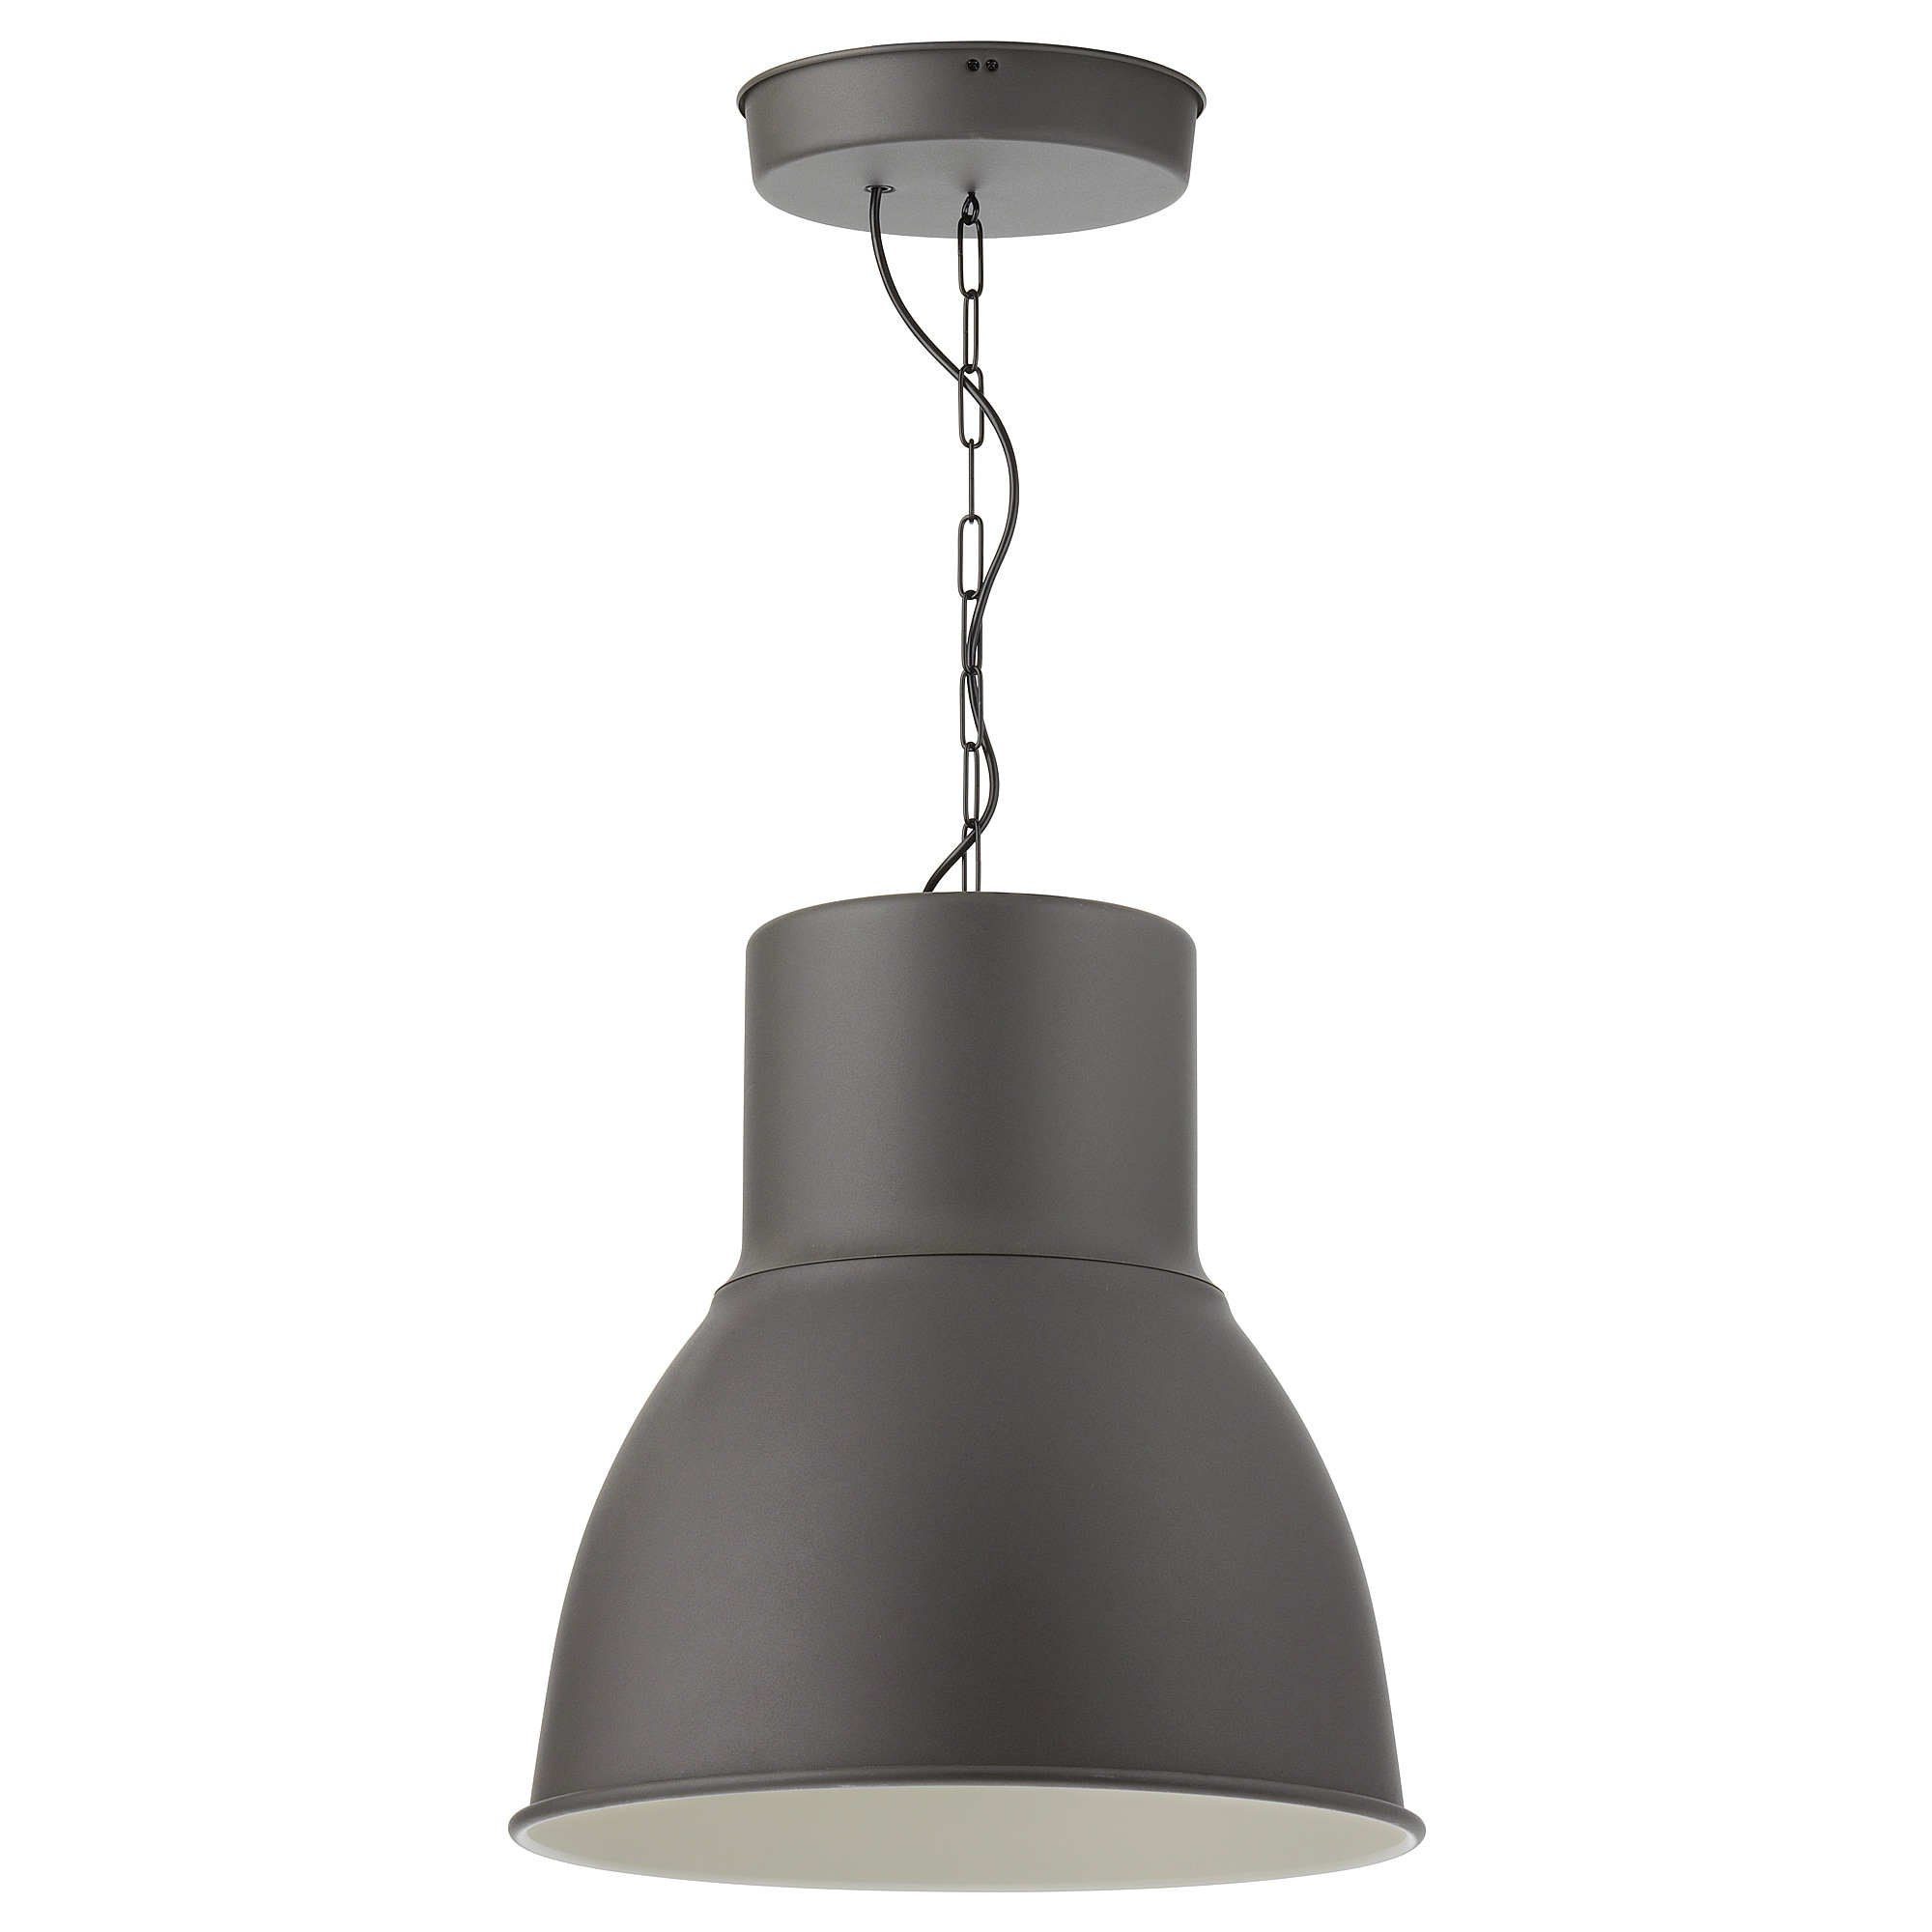 Hektar In M2 Pendant Lamp Hektar Dark Grey